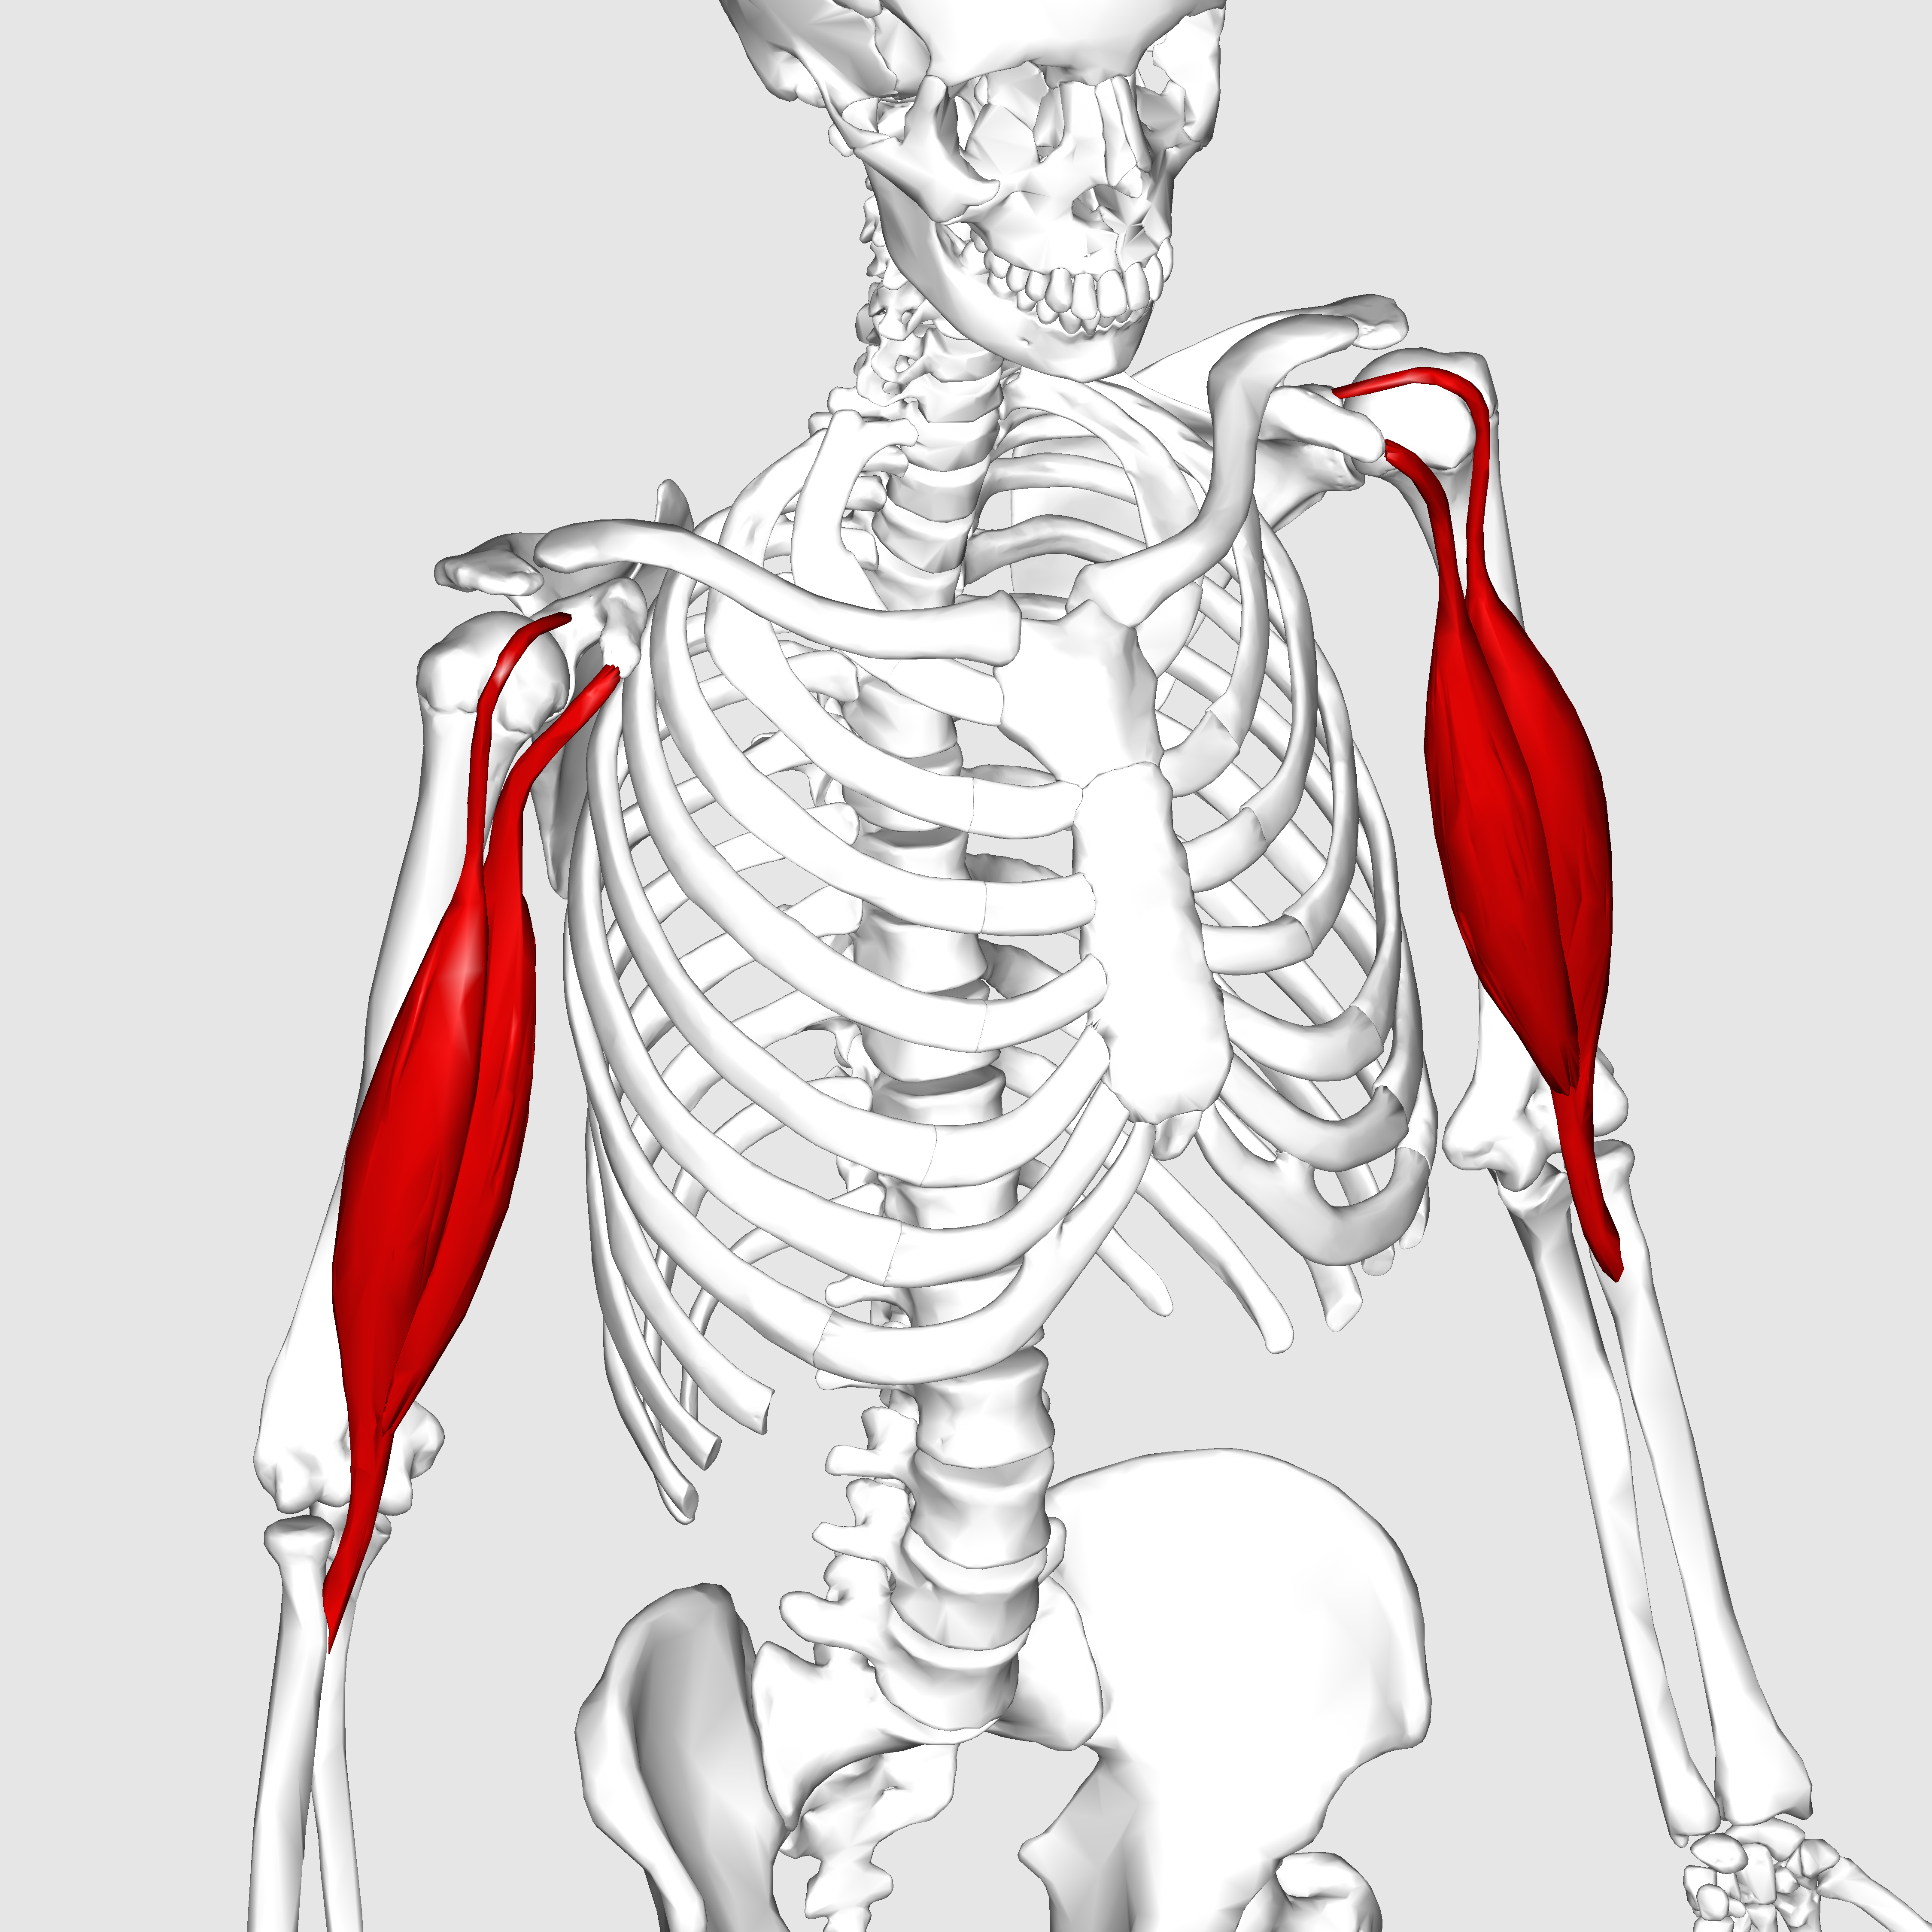 File:Biceps brachii muscle02.png - Wikimedia Commons